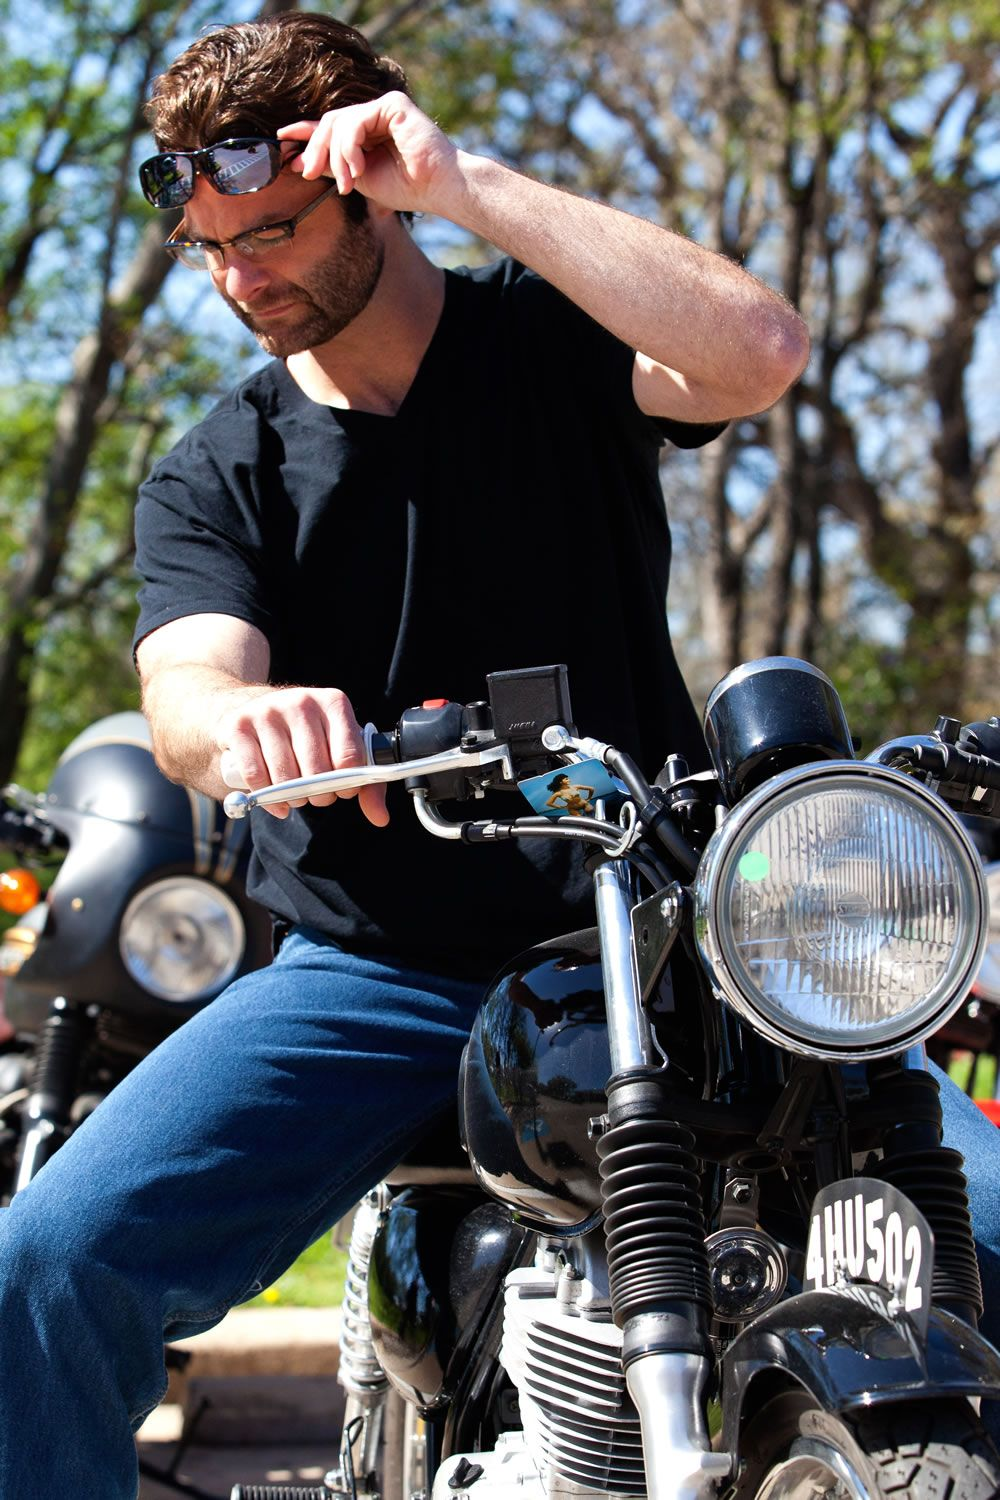 335fbacdd1 Quamby Eternal Black fitover sunglasses by Jonathan Paul Fitovers are  perfect for working on or riding your motorcycle